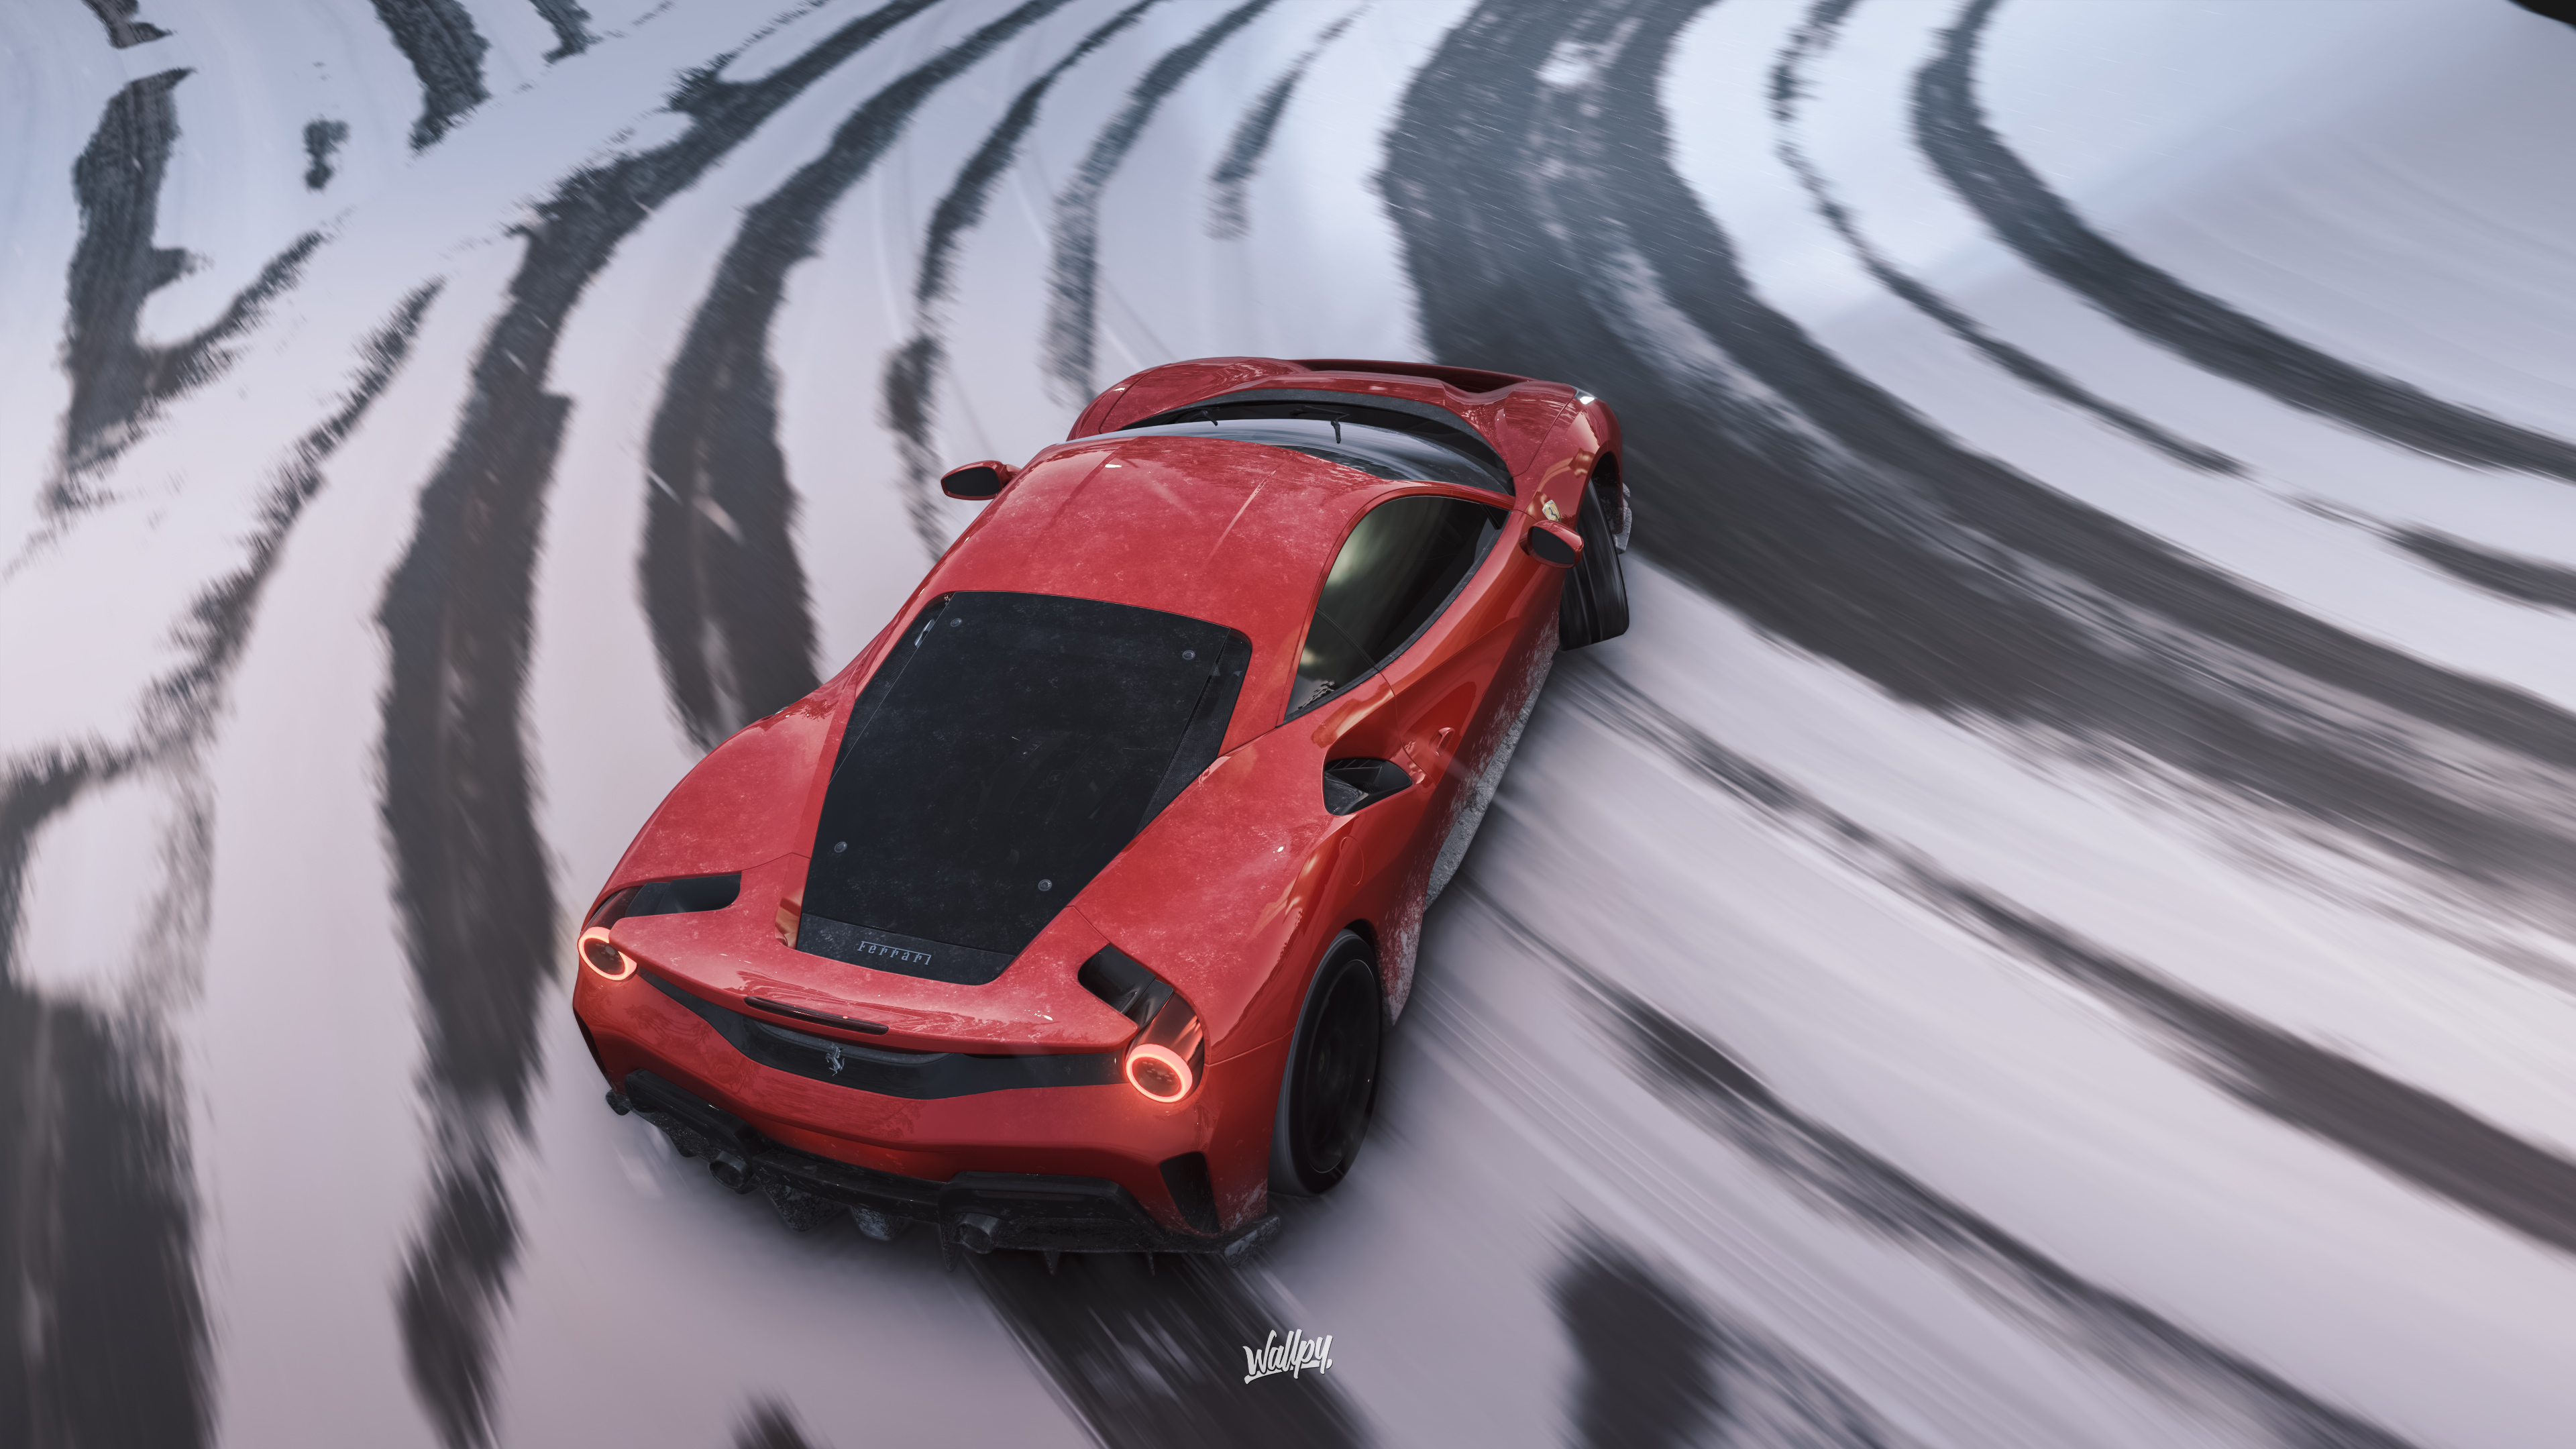 Forza Horizon 4 Ferrari 4k Hd Games 4k Wallpapers Images Backgrounds Photos And Pictures